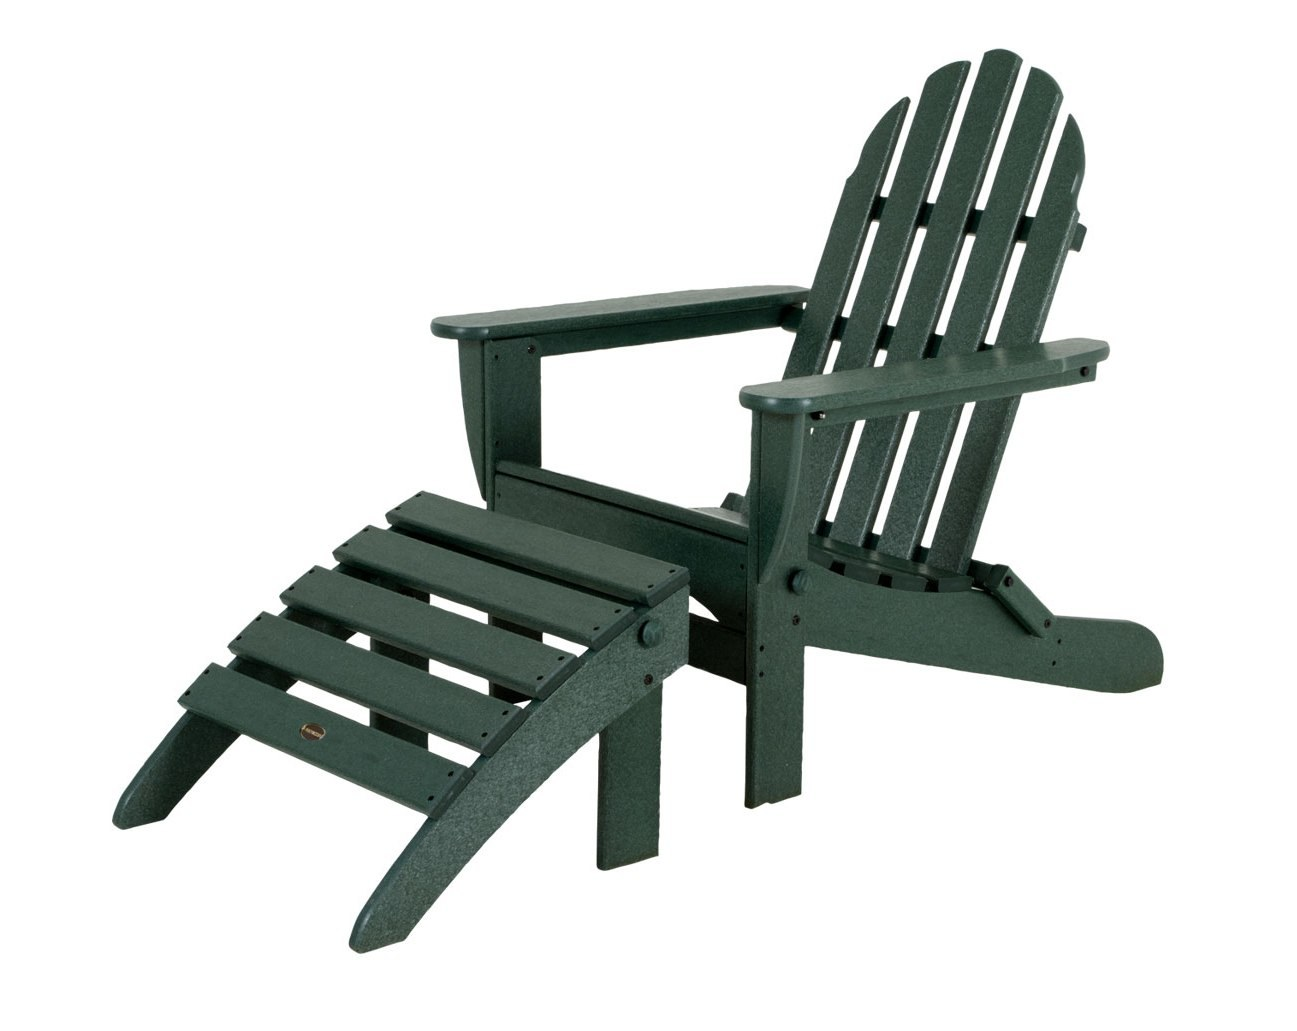 Adirondack 2 Pc Outdoor Lounge Chair Set by POLYWOOD PWS136 1 GR